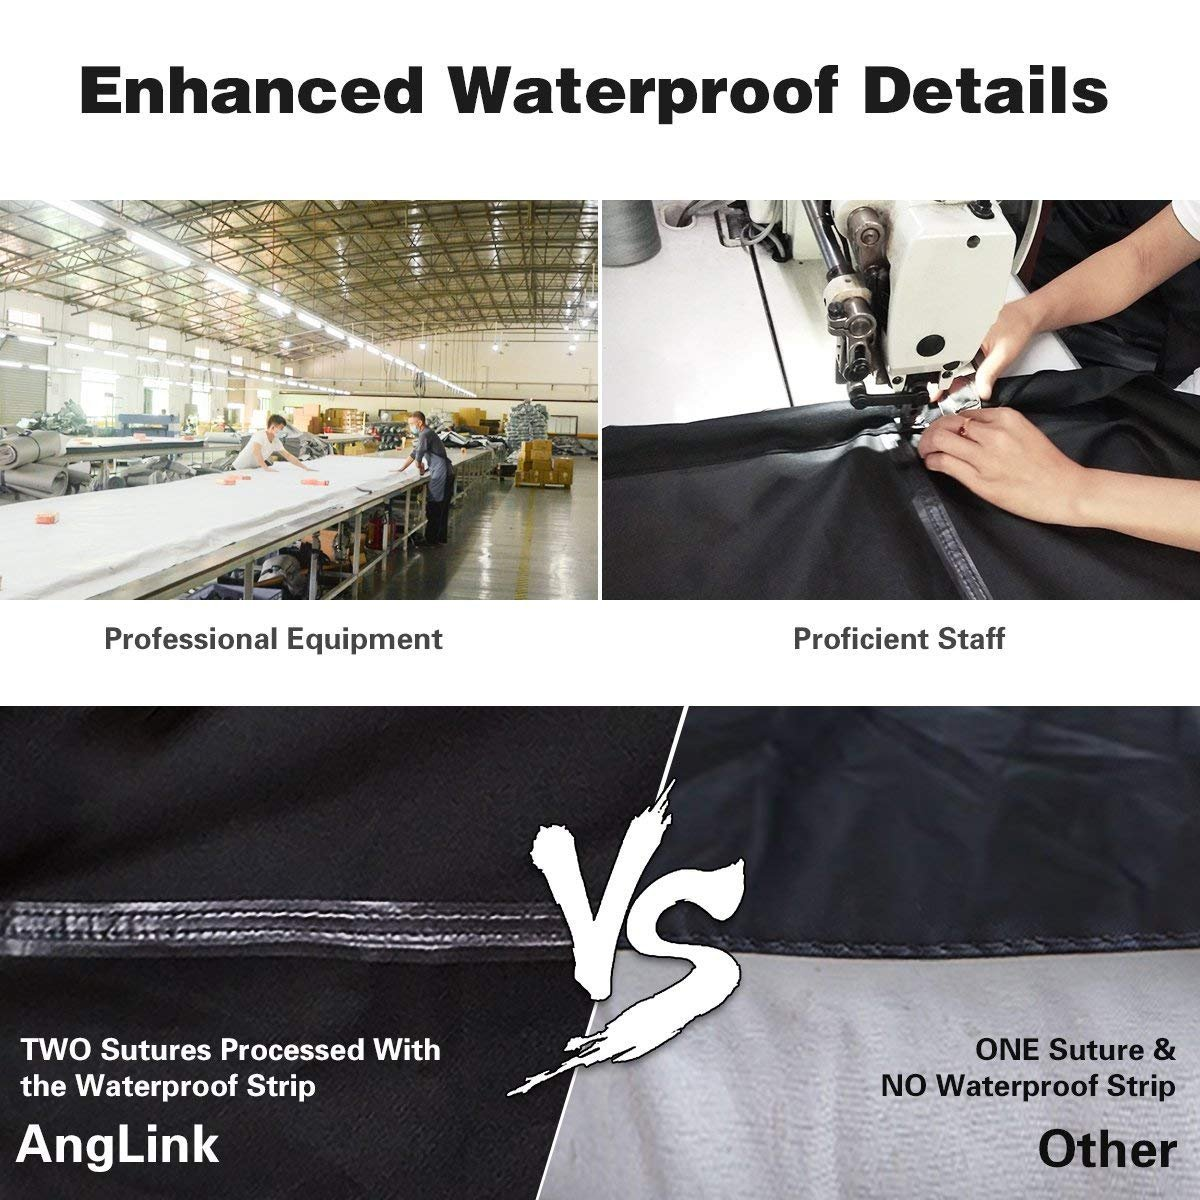 Waterproof Bike Cover 29 Inch Heavy Duty 210D Oxford Bicycle Cover with Double stitching & Heat Sealed Seams, Protection from UV Rain Snow Dust for Mountain Road Electric Bike Hybrid Outdoor Storage by Anglink (Image #2)